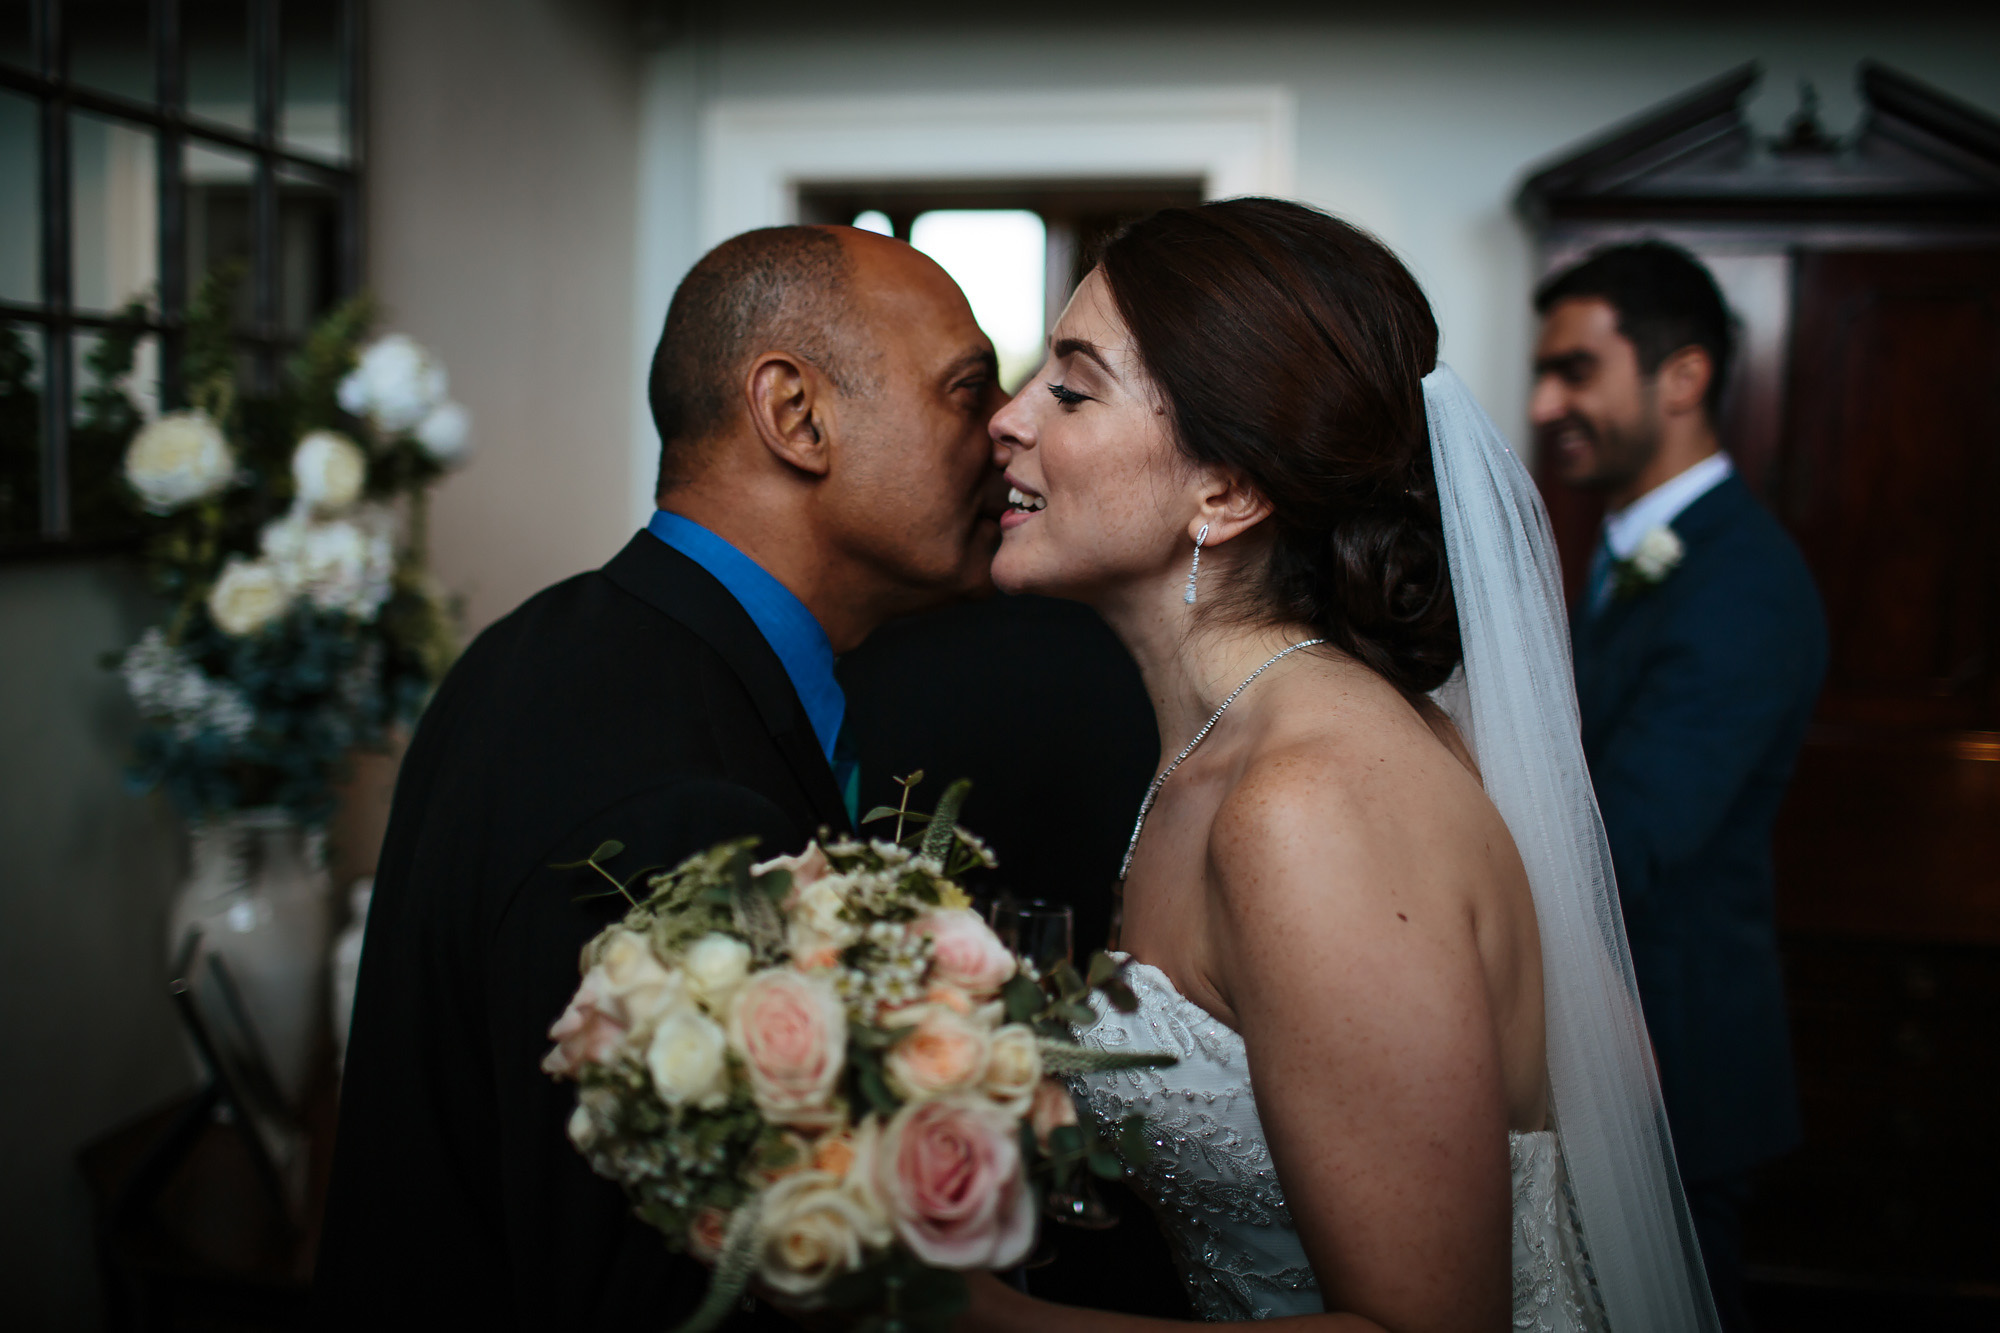 Bride with flowers kissing guest at her wedding